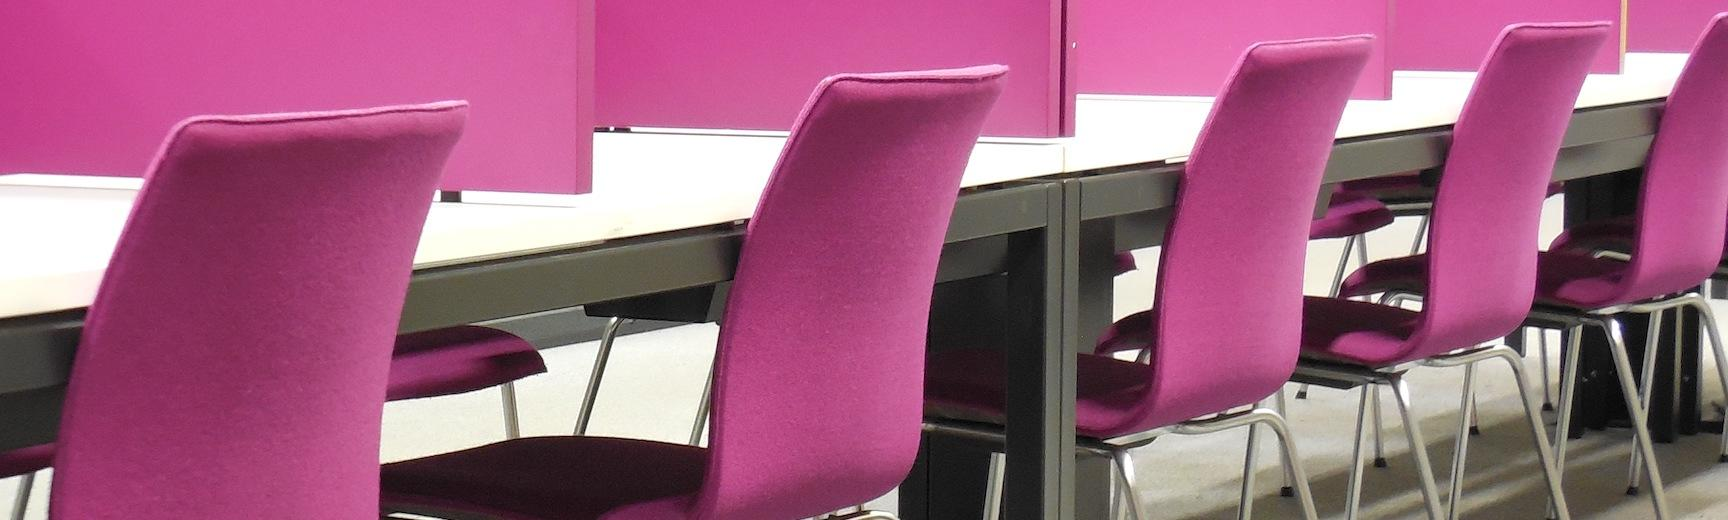 Pink chairs at tables separated by dividers